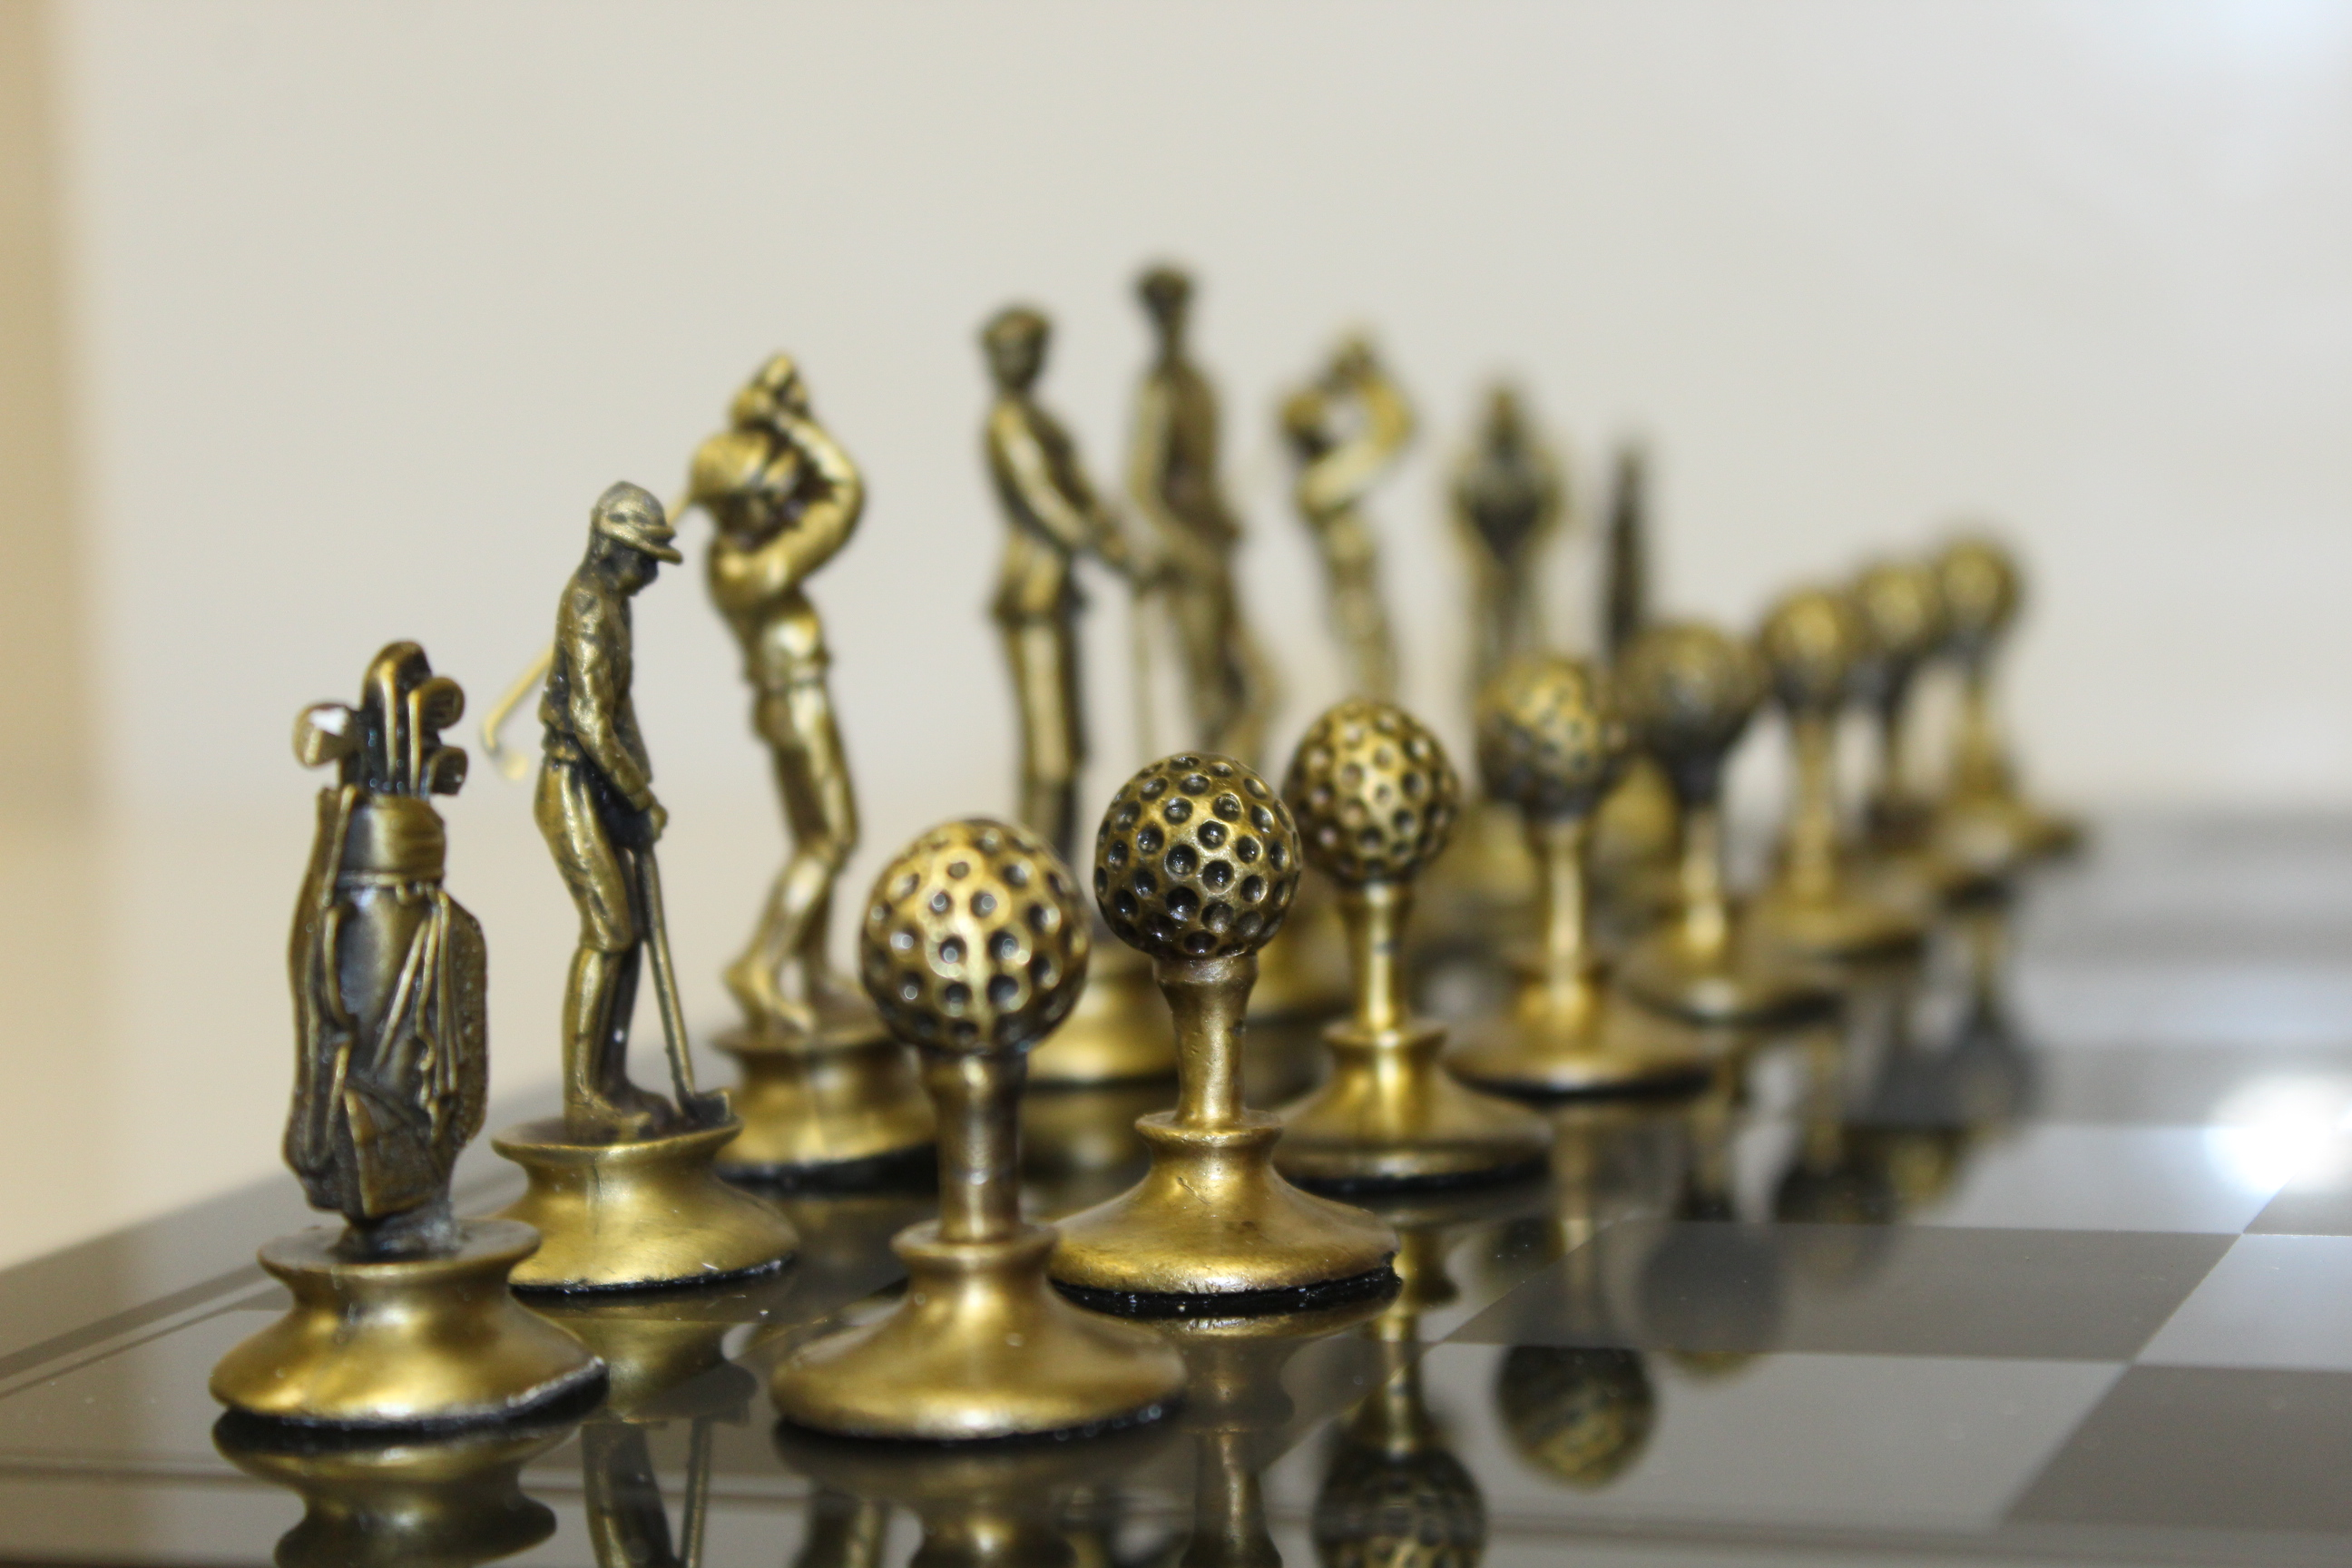 Gold Chess Pieces Lot Detail Deluxe Golf Themed Pewter Silver Gold Colored Chess